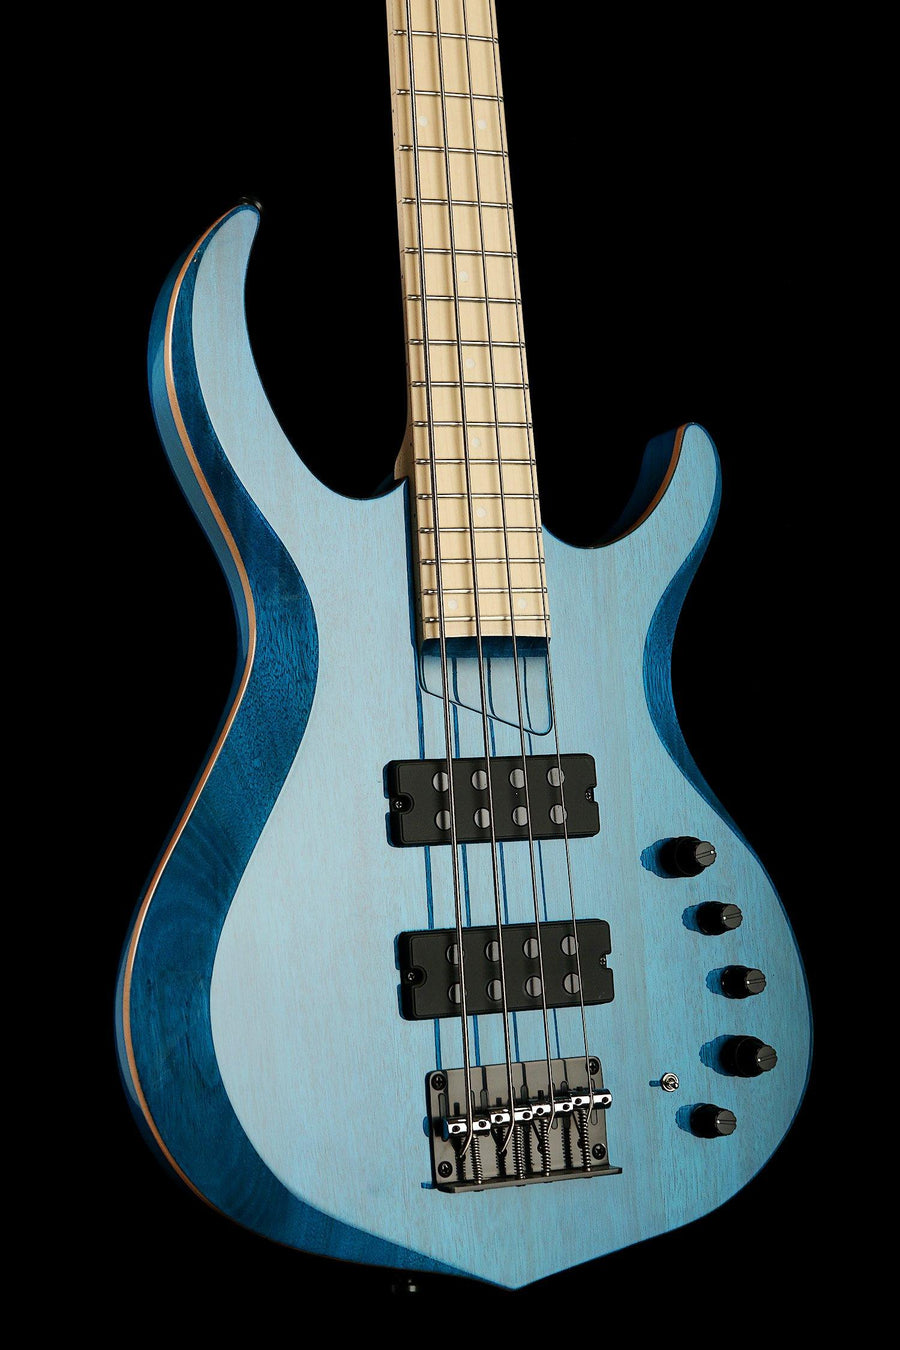 Bass Guitars - Sire Marcus Miller M2 4 String